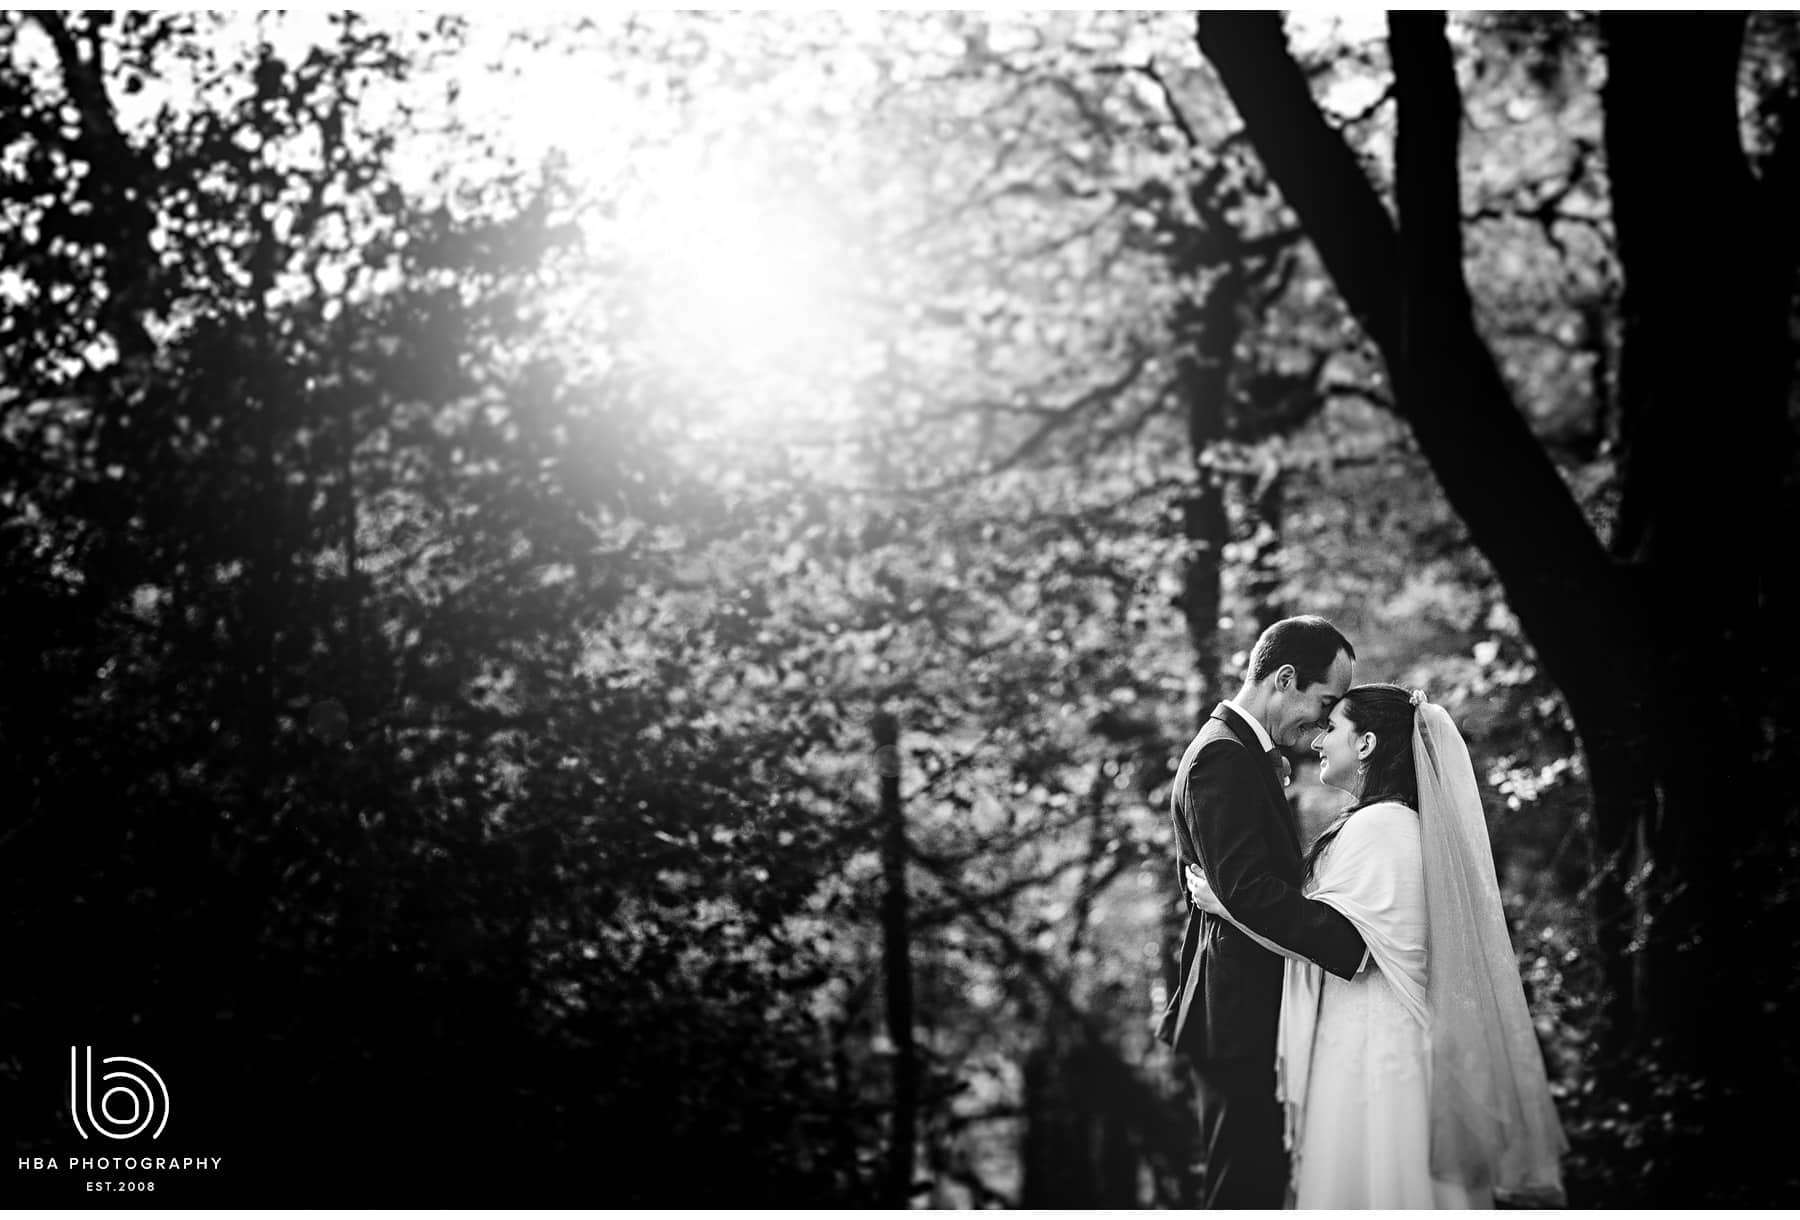 the bride & groom in the autumn leaves